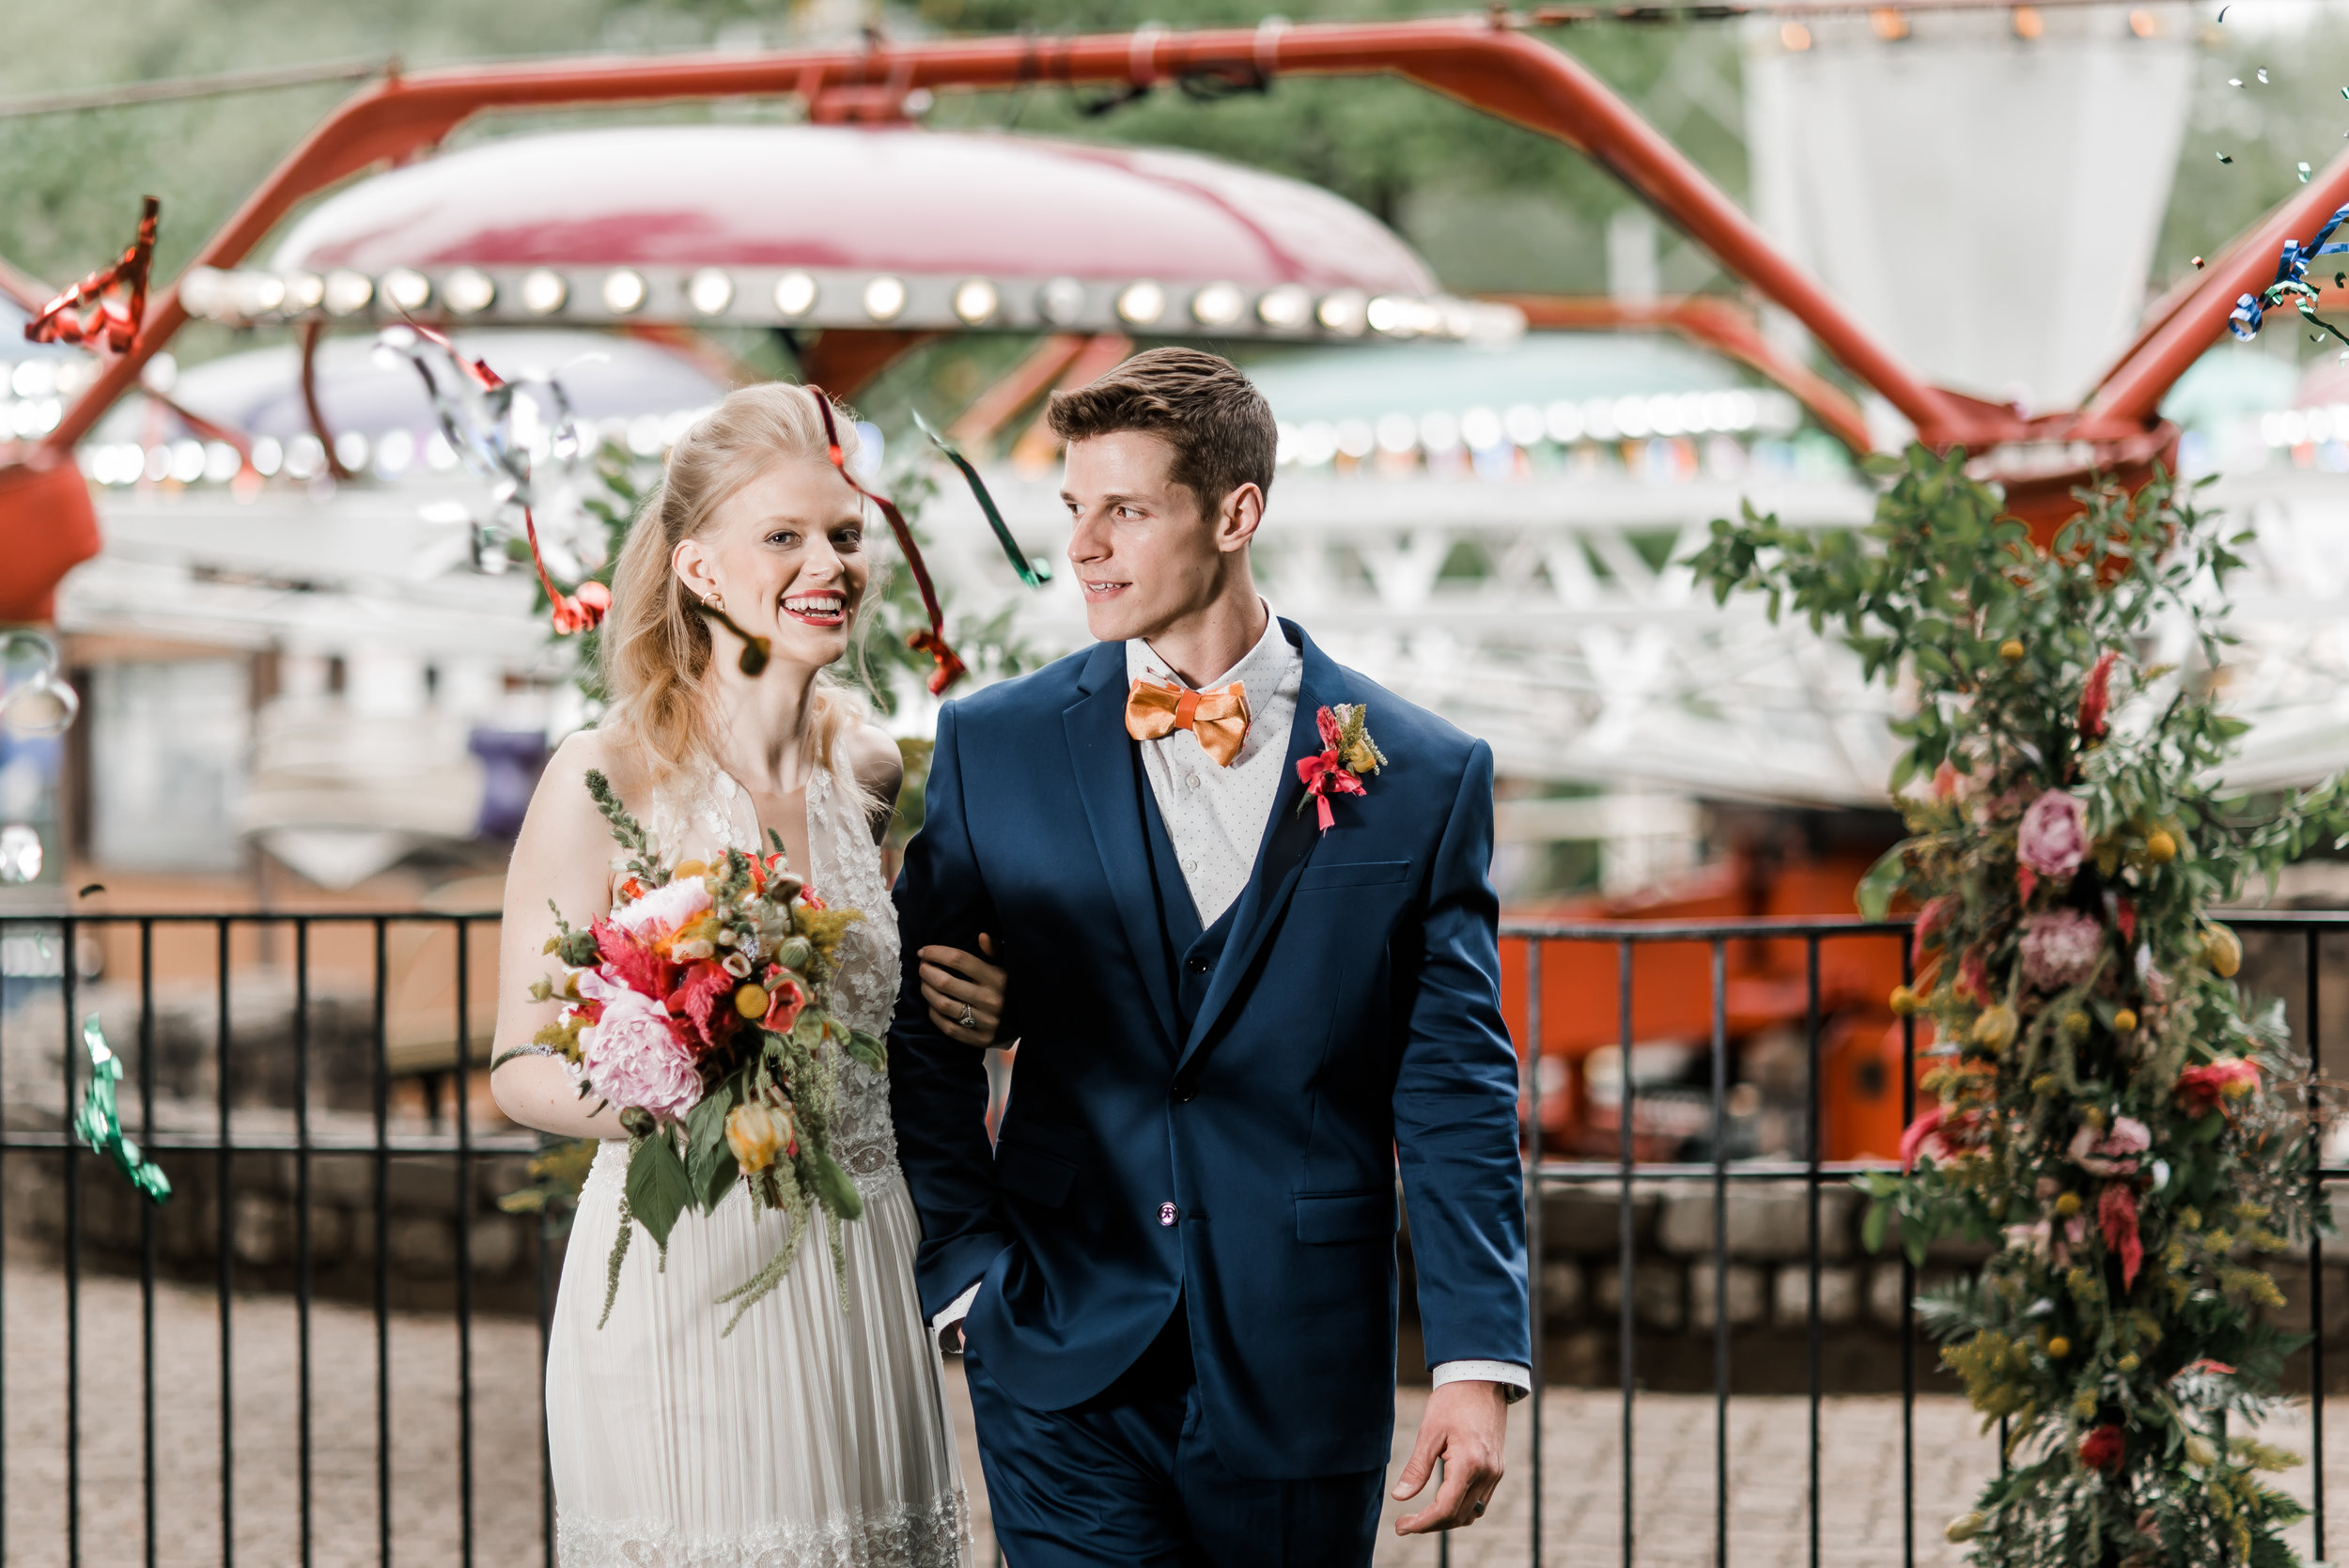 Kennywood Wedding-113.jpg